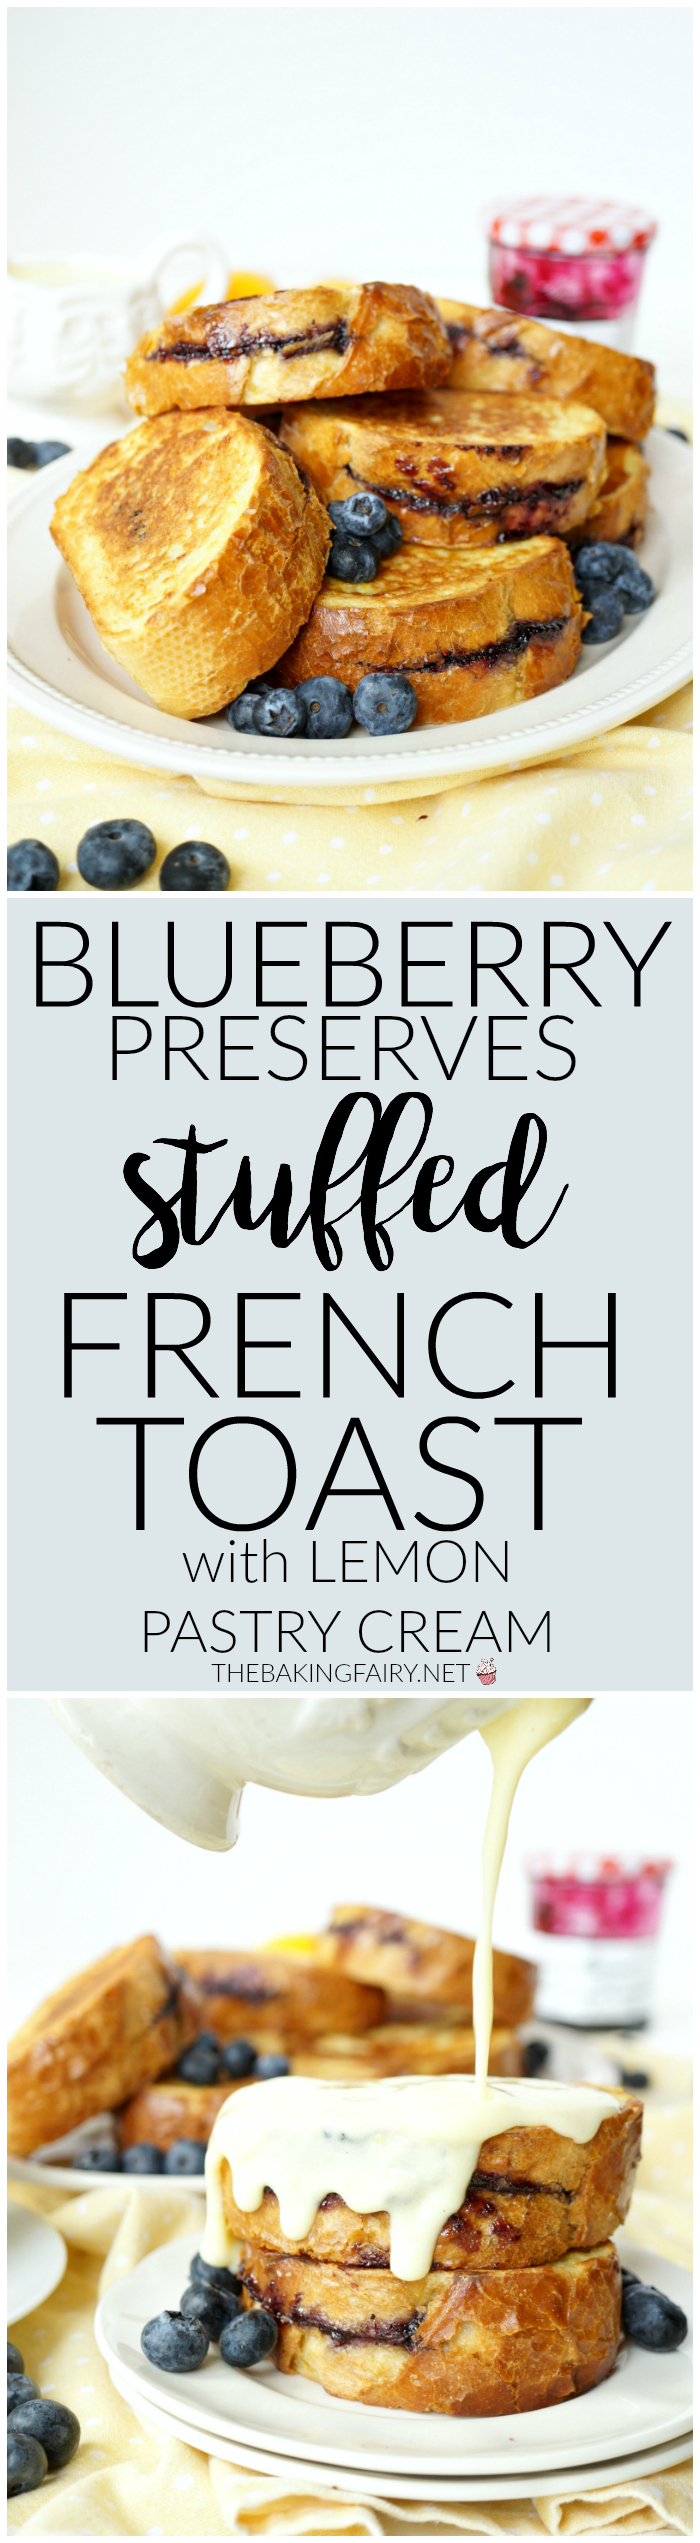 blueberry preserves stuffed french toast with lemon pastry cream | The Baking Fairy